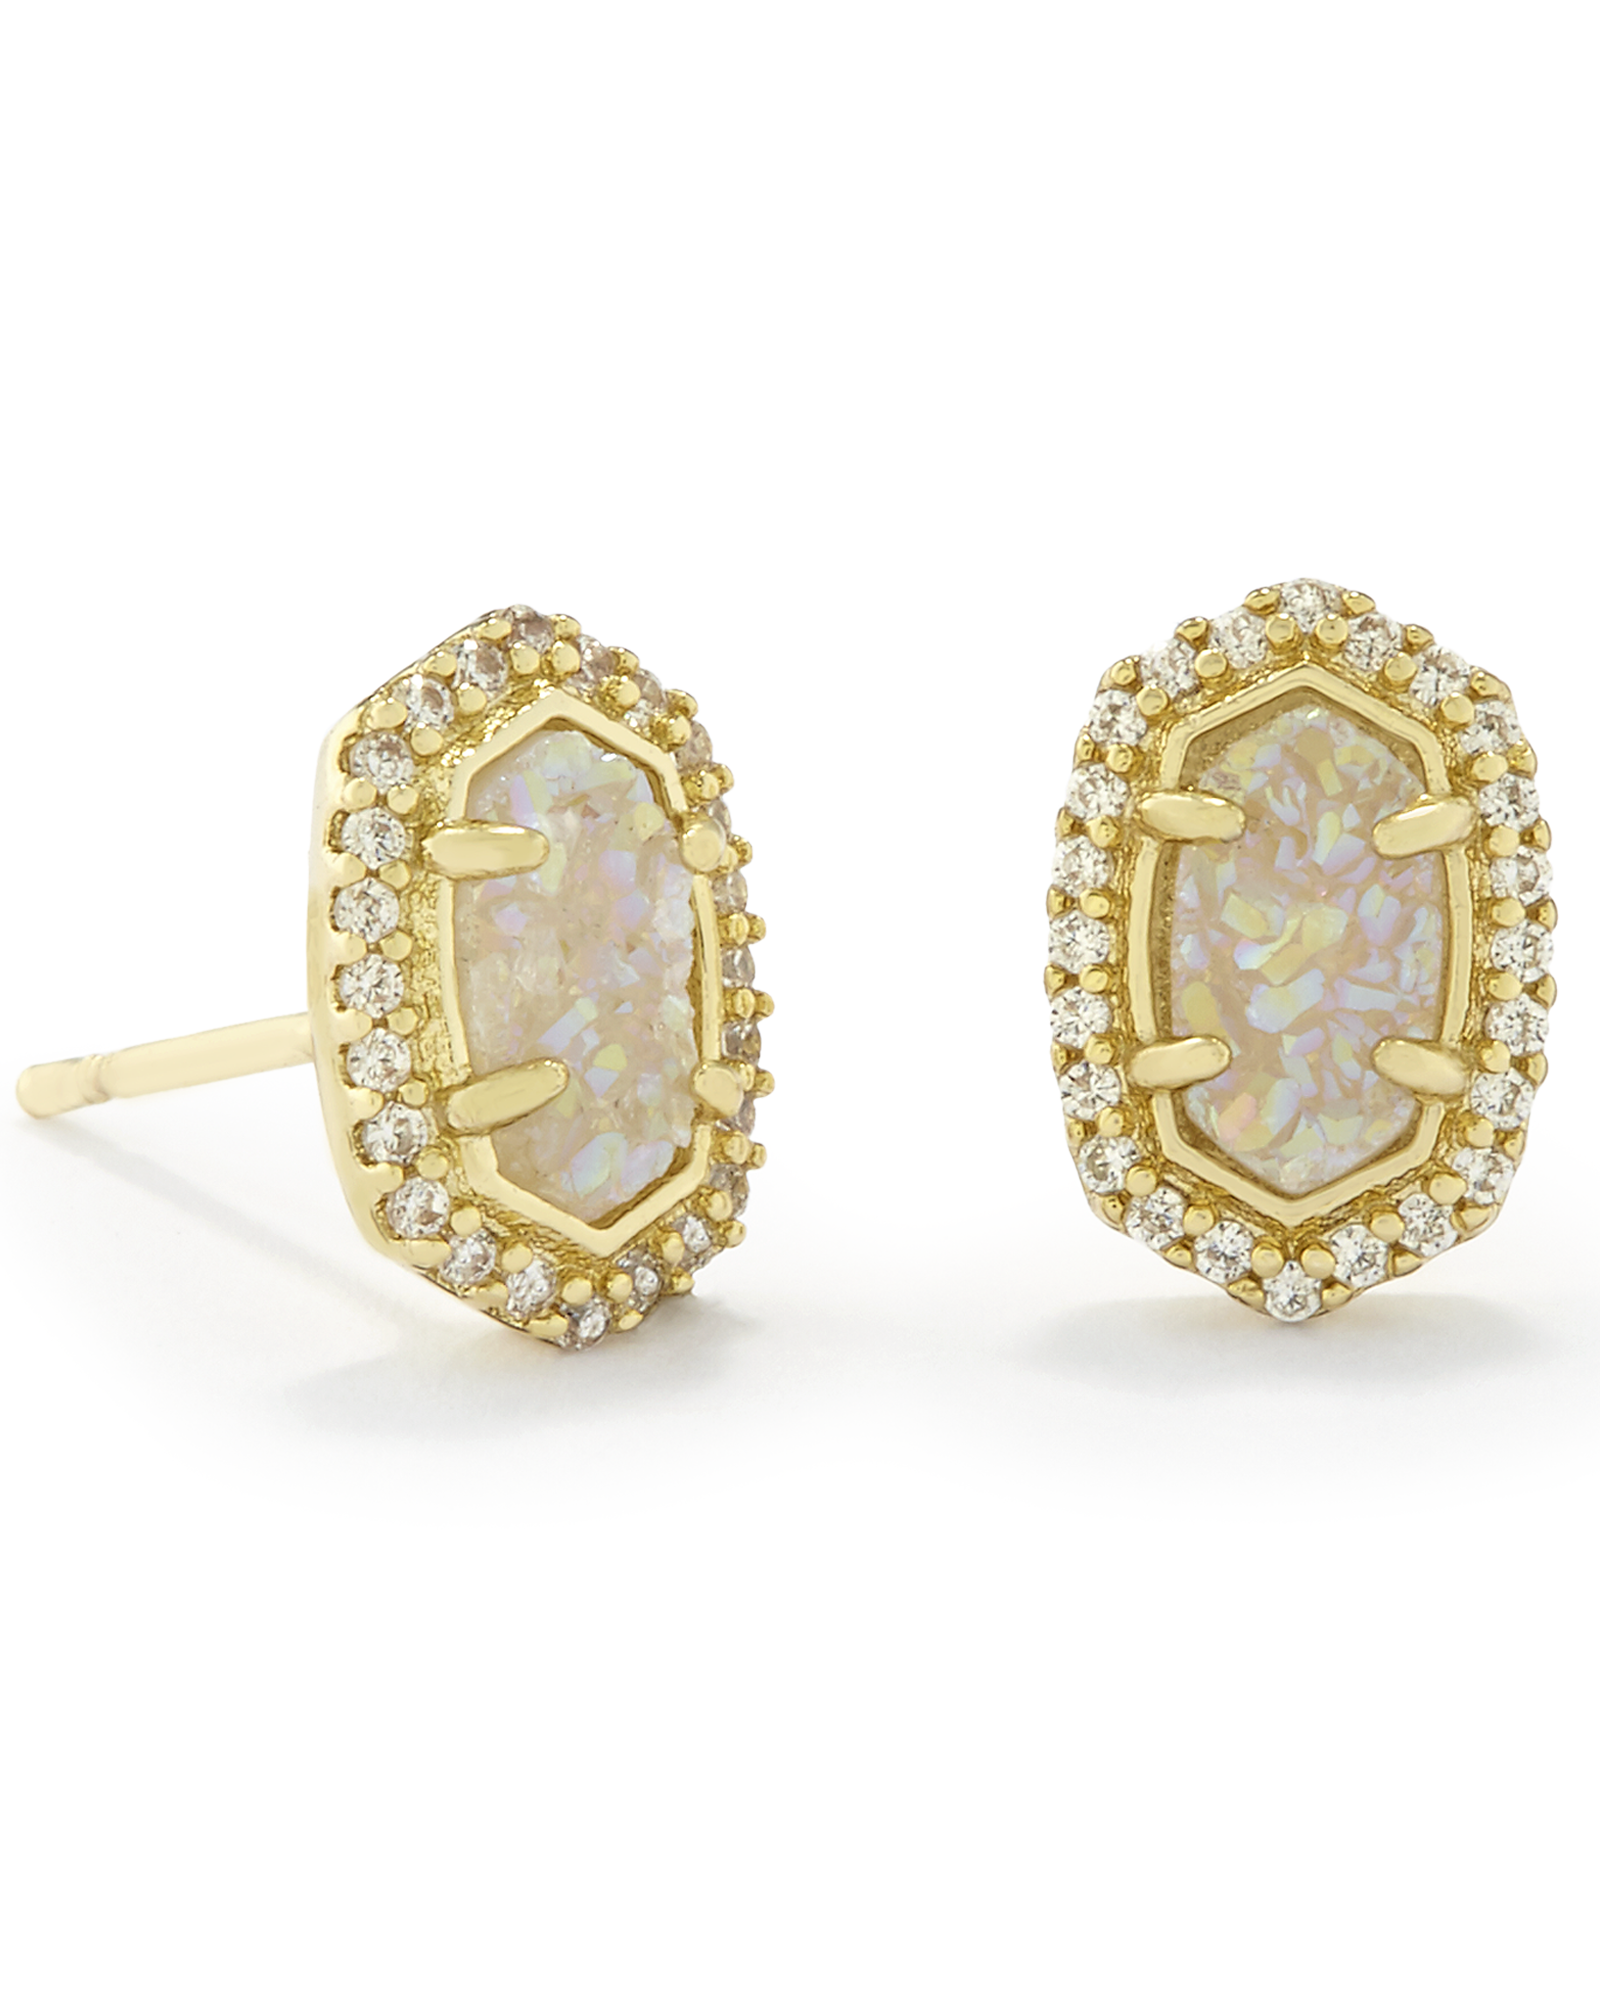 Cade Gold Stud Earrings in Iridescent Drusy Kendra Scott